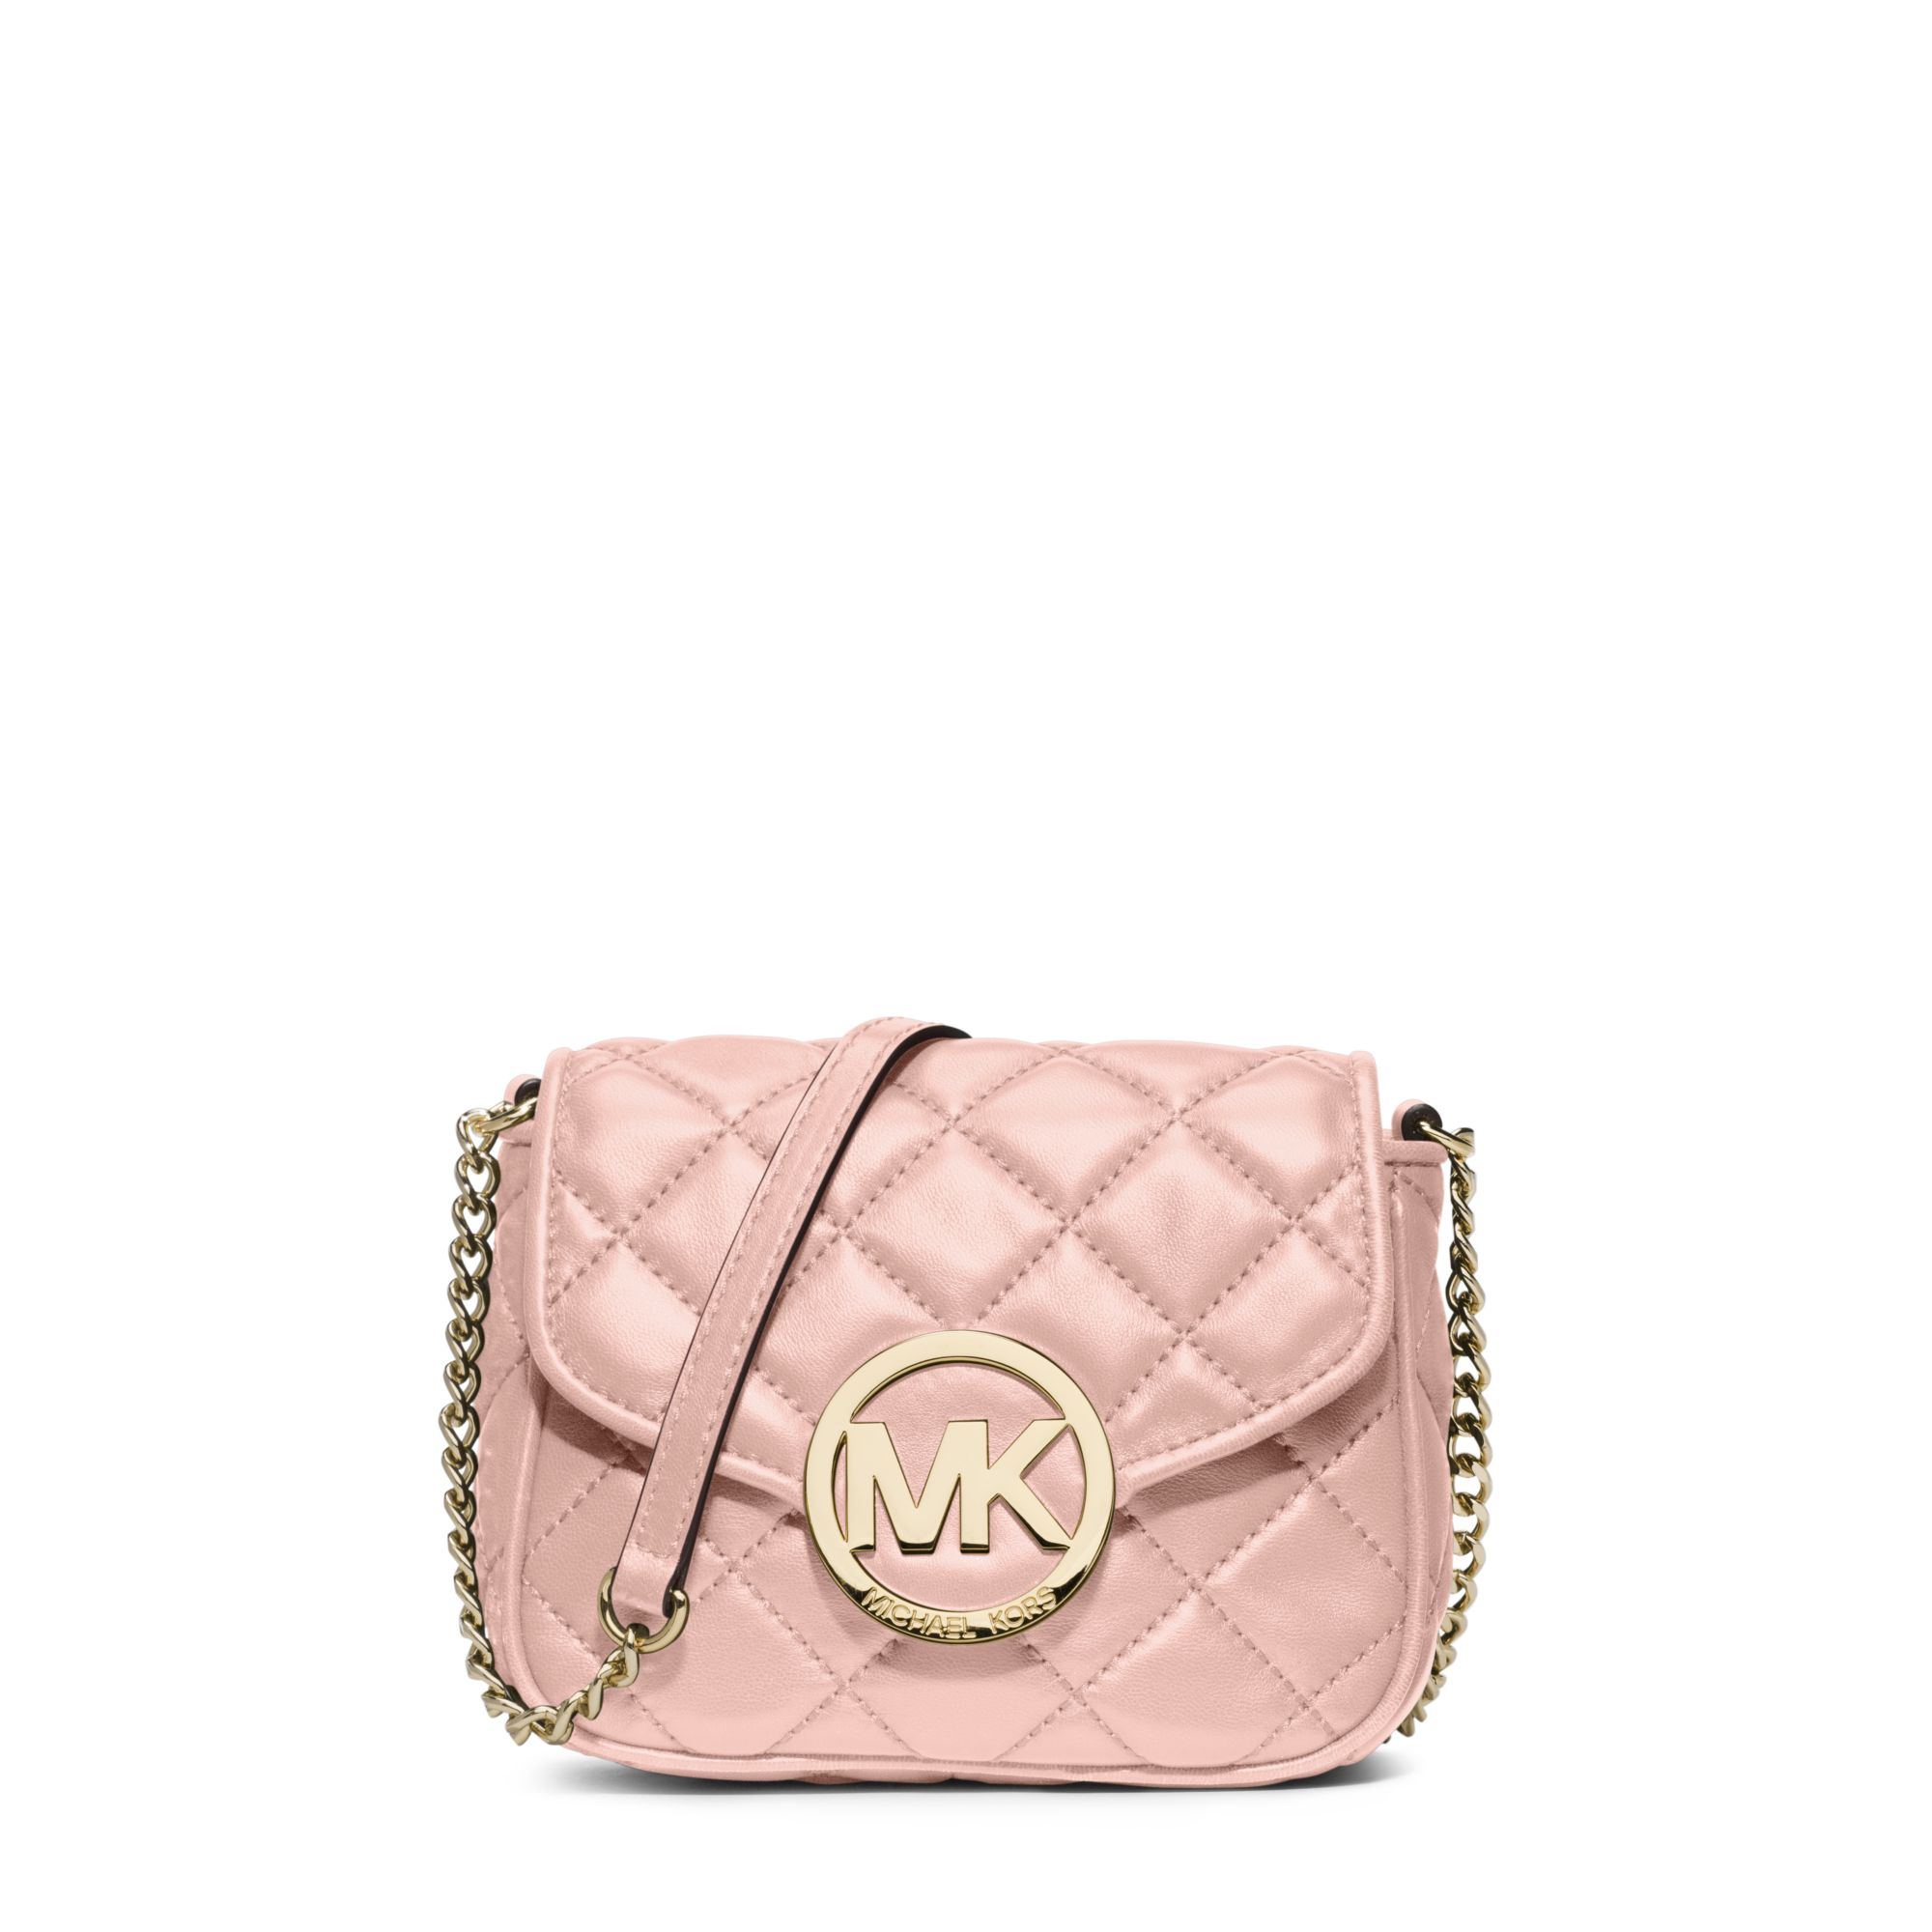 Michael kors Fulton Small Quilted-Leather Crossbody in Pink | Lyst : michael kors fulton quilted tote - Adamdwight.com